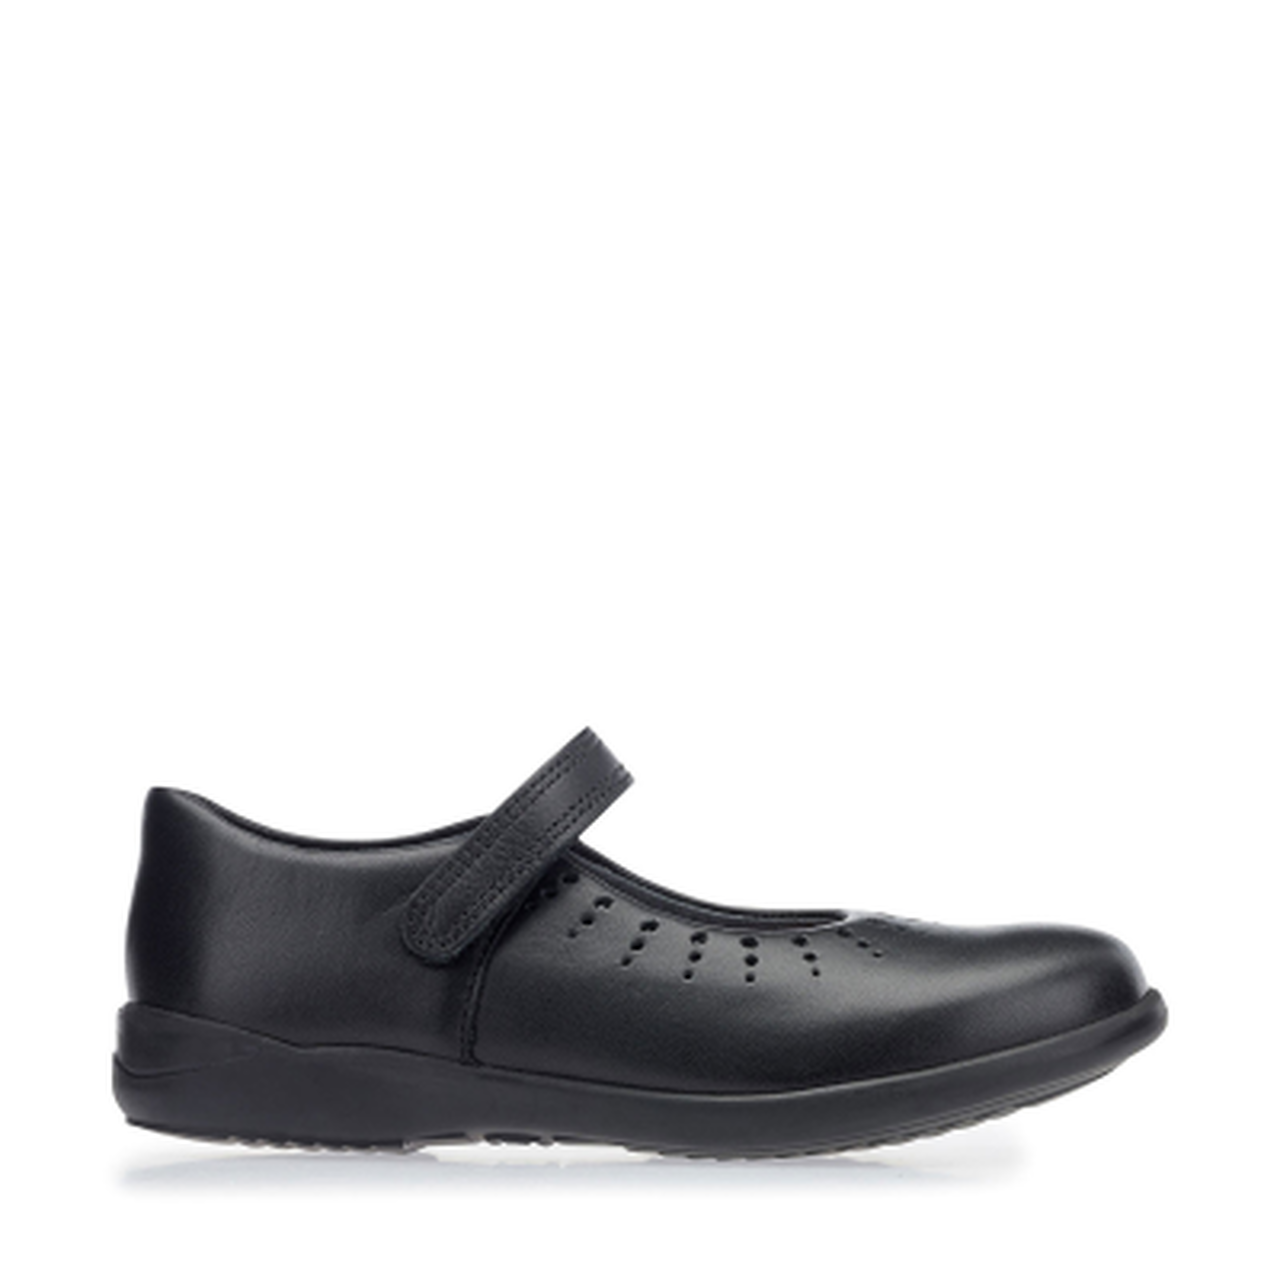 Start-rite Mary Jane Girls Black Leather Shoe